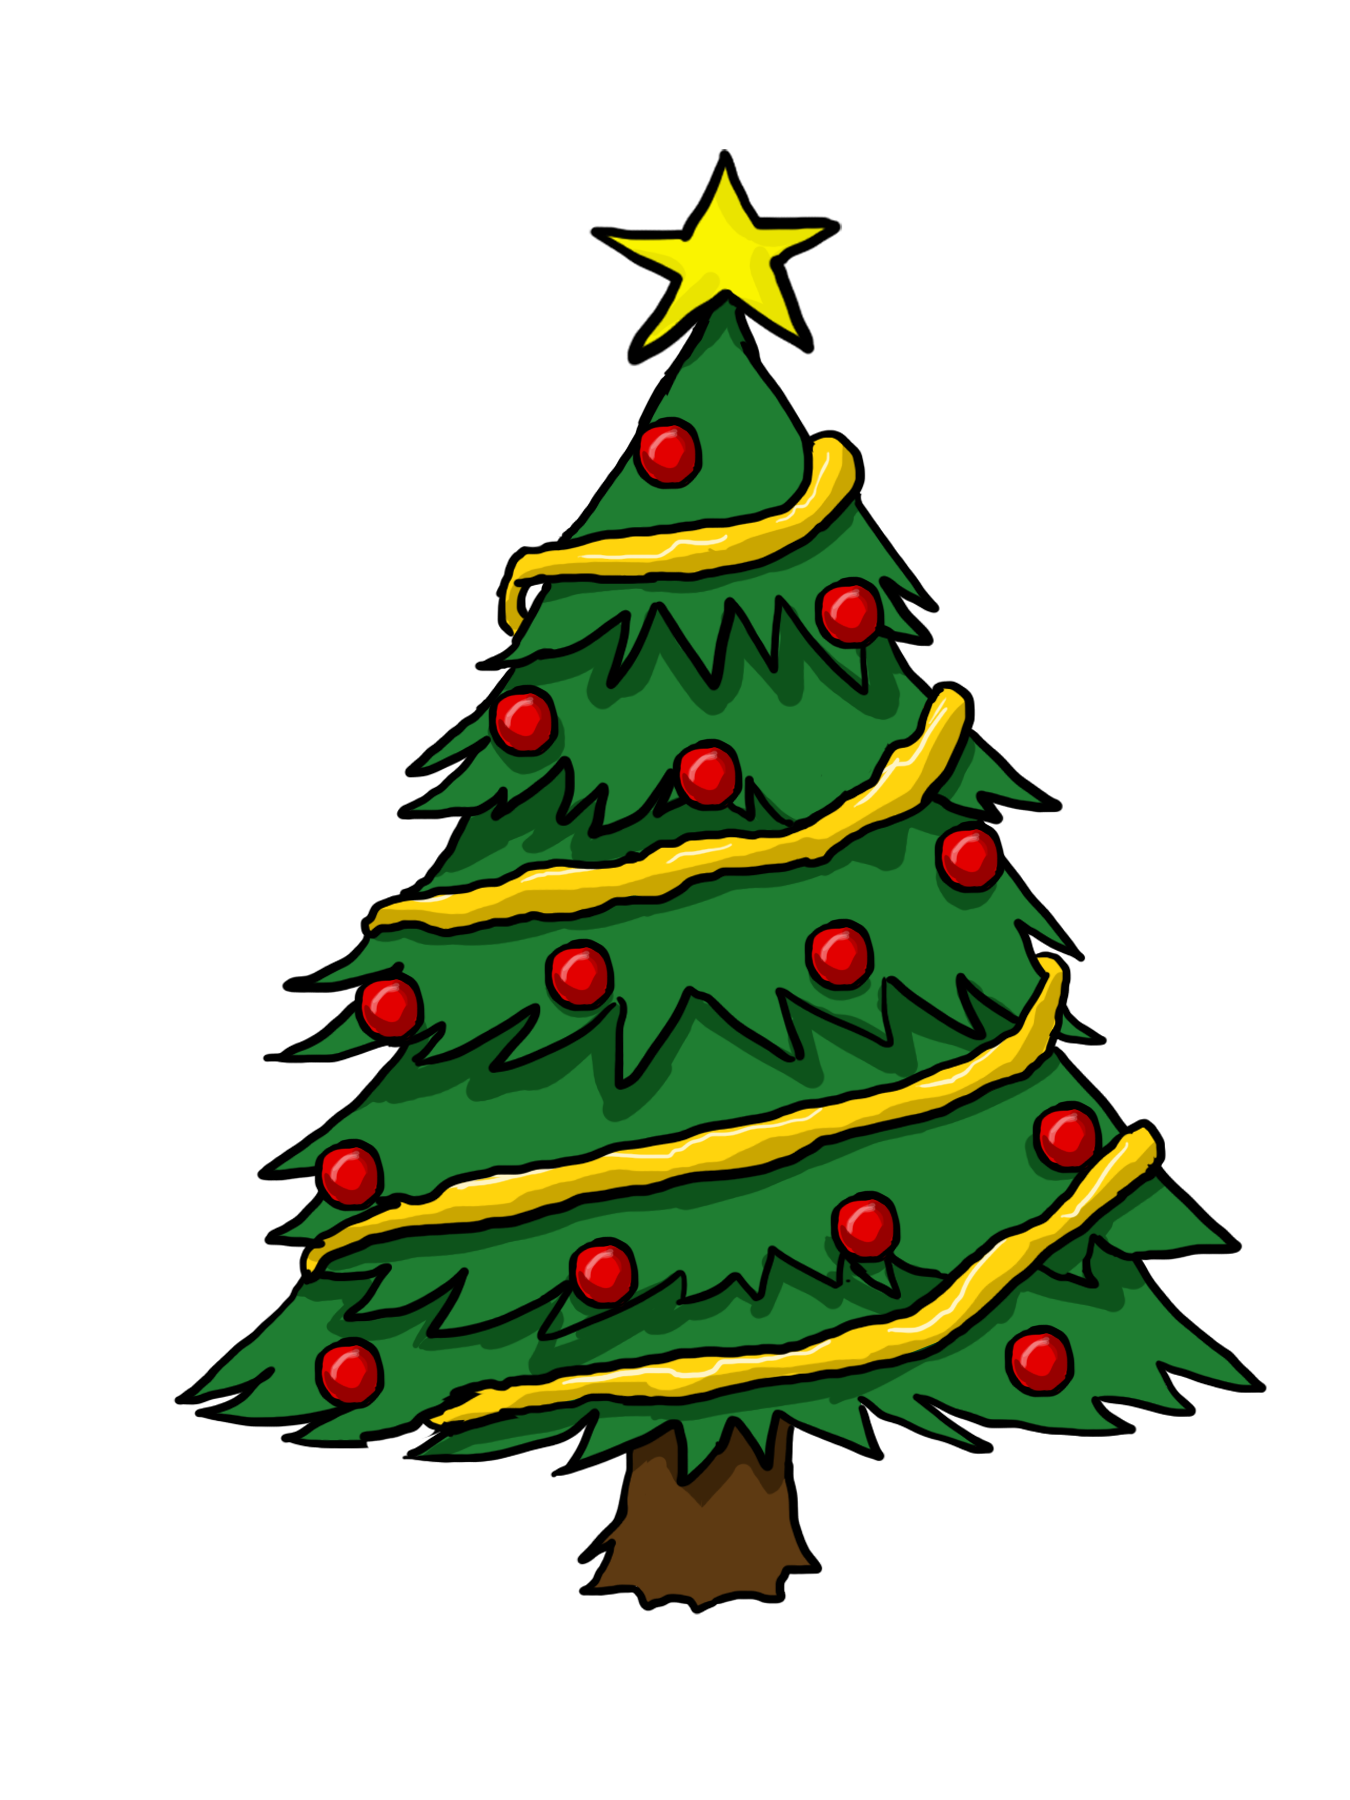 Christmas Tree Emoji.Free Cliparts Clipartbest Silhouette Cameo Files